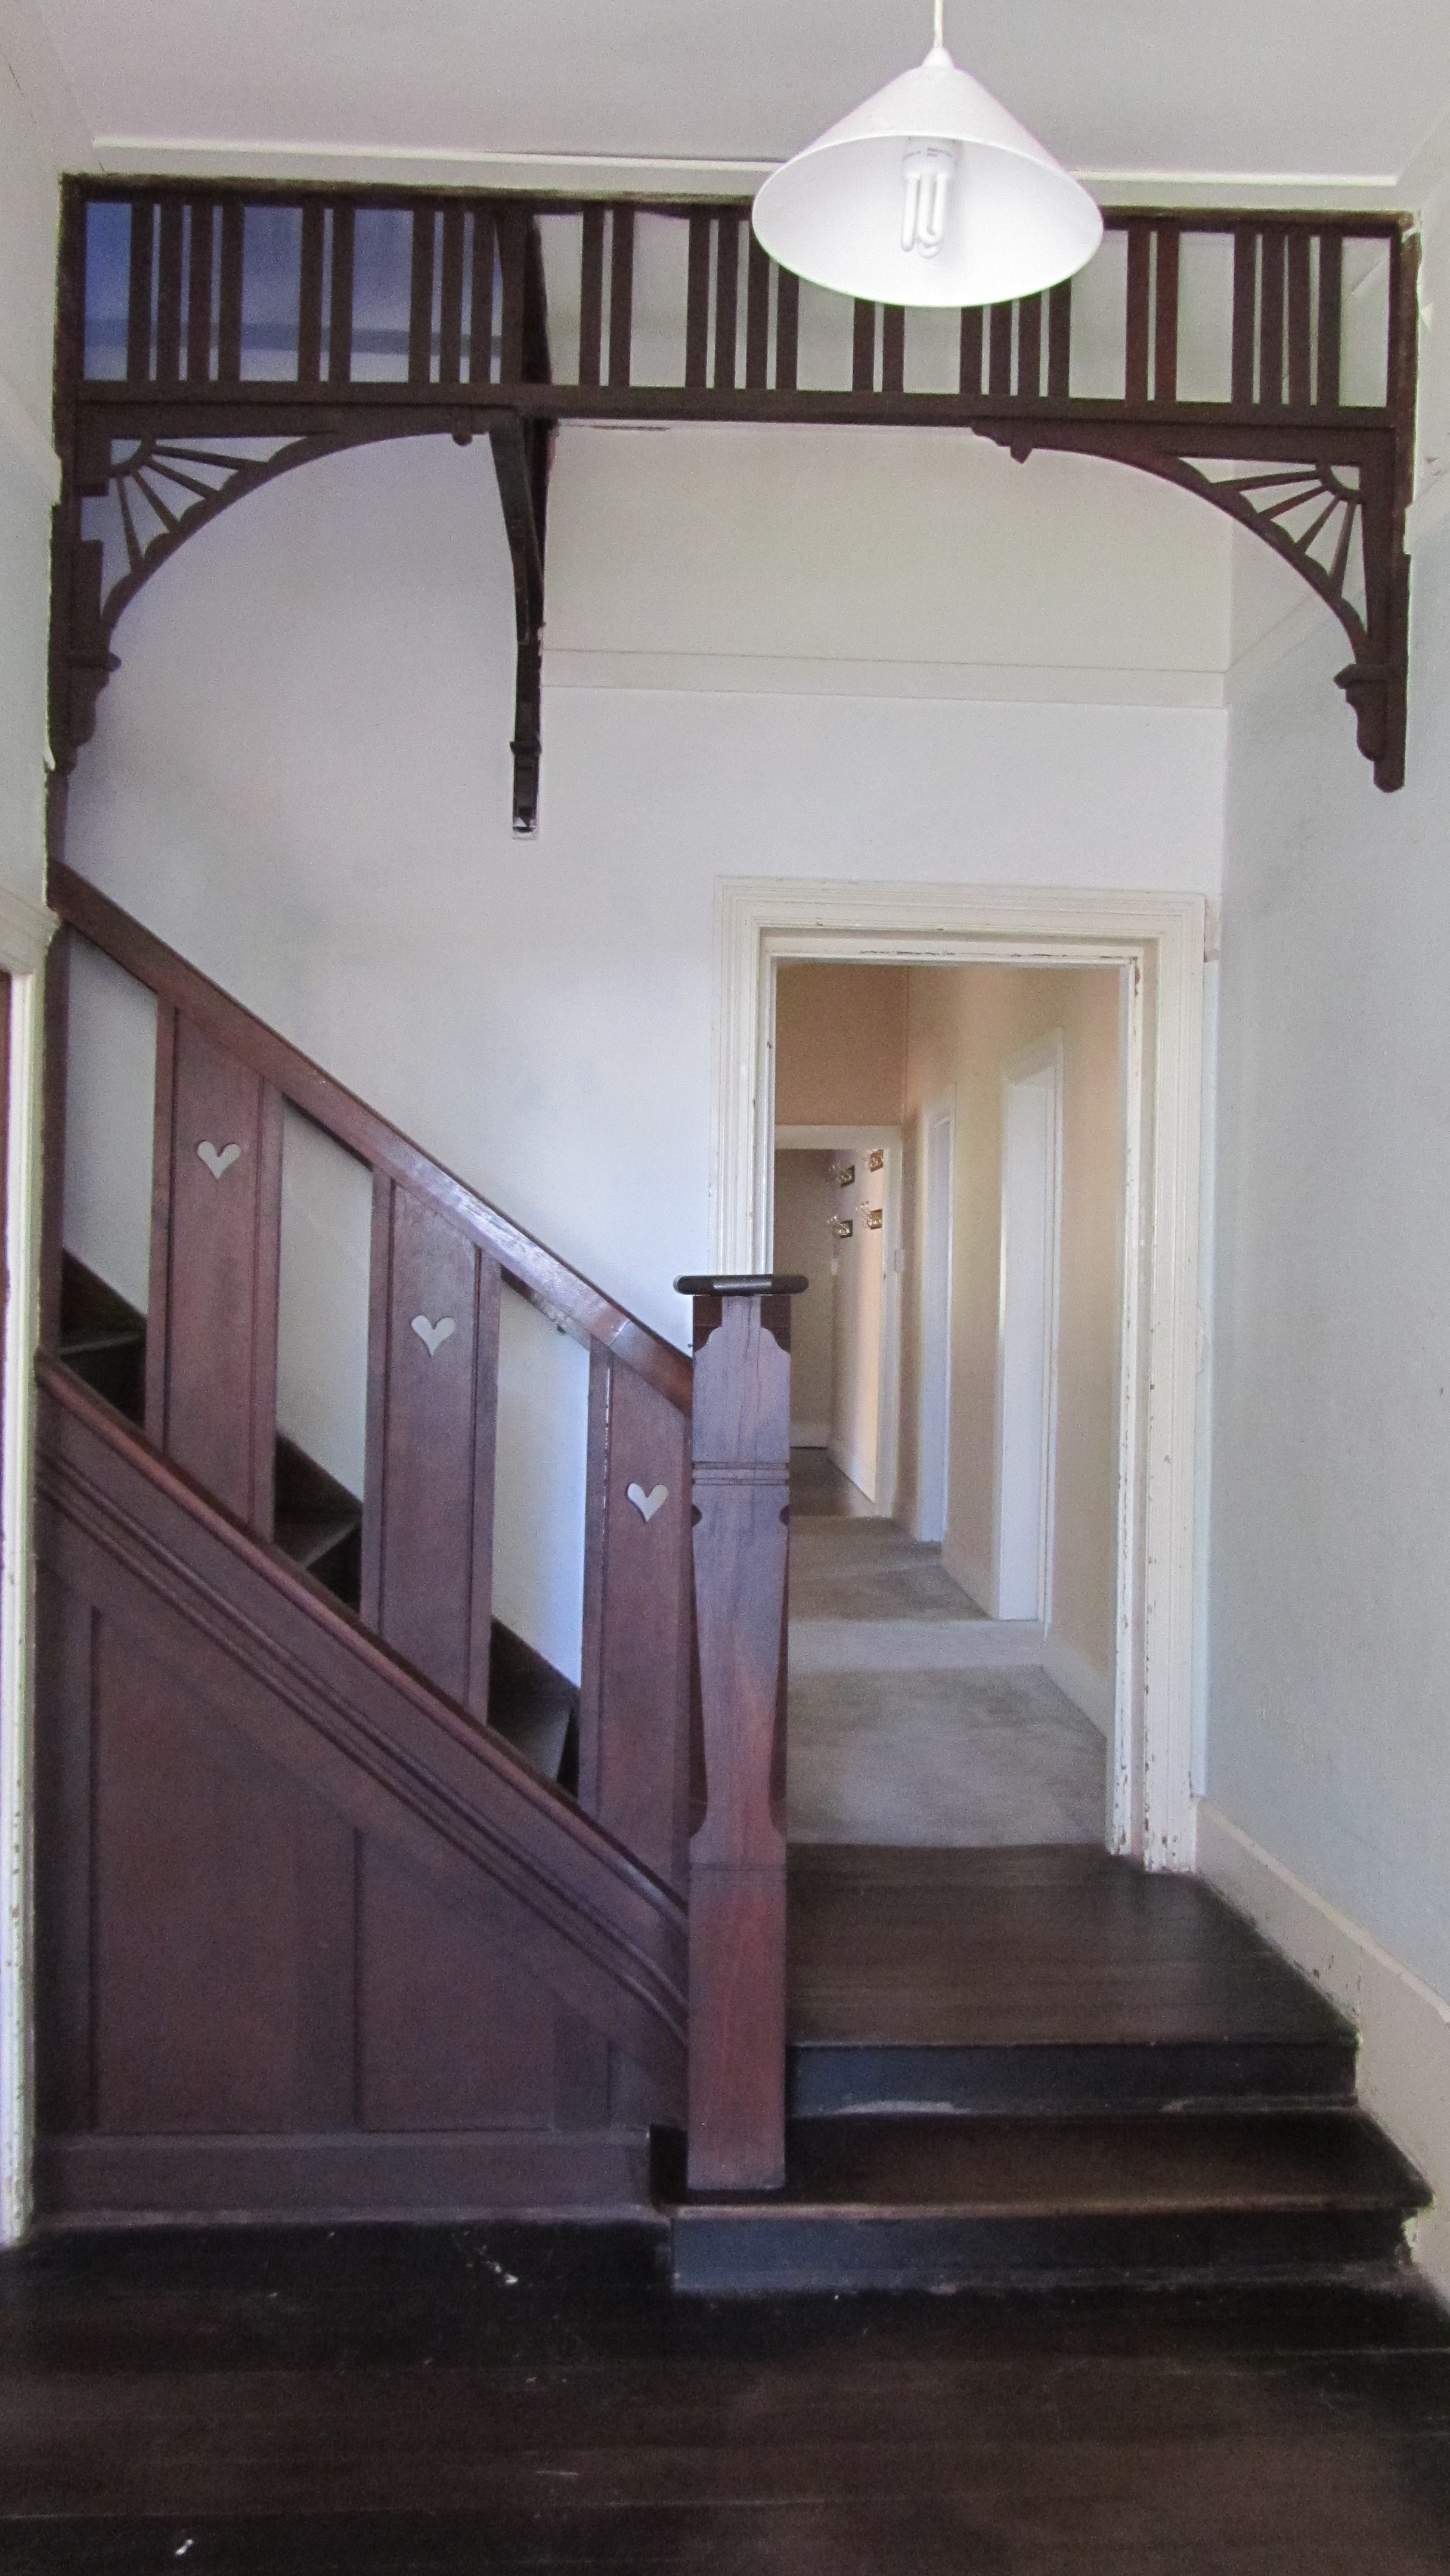 Interior staircase from ground floor